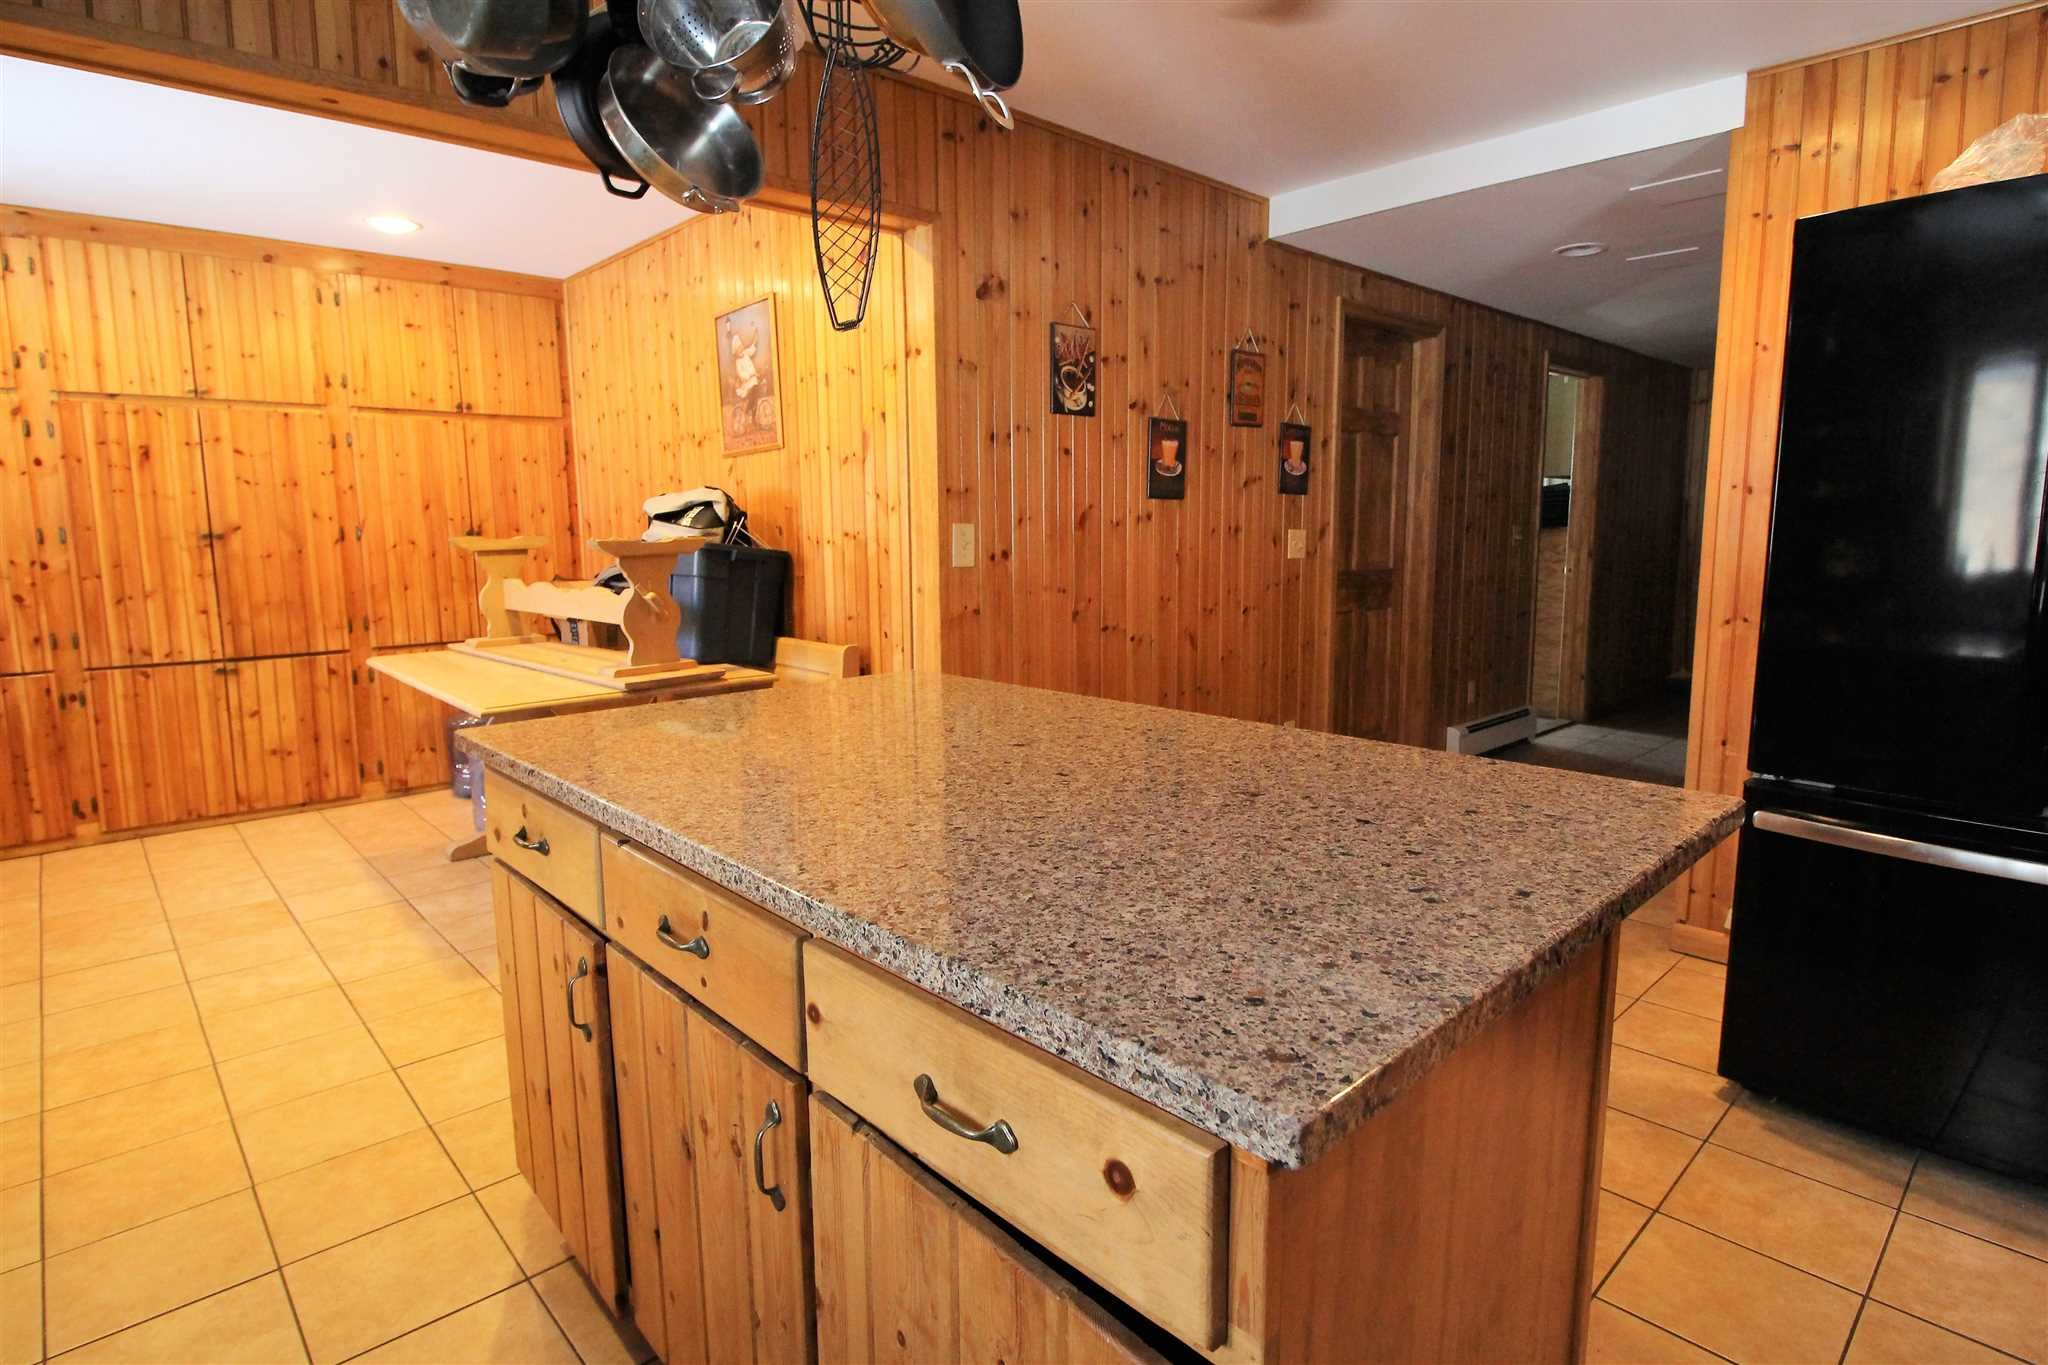 3 MOUNTAIN ROAD Marlboro, NY 12542 - MLS #: 368521